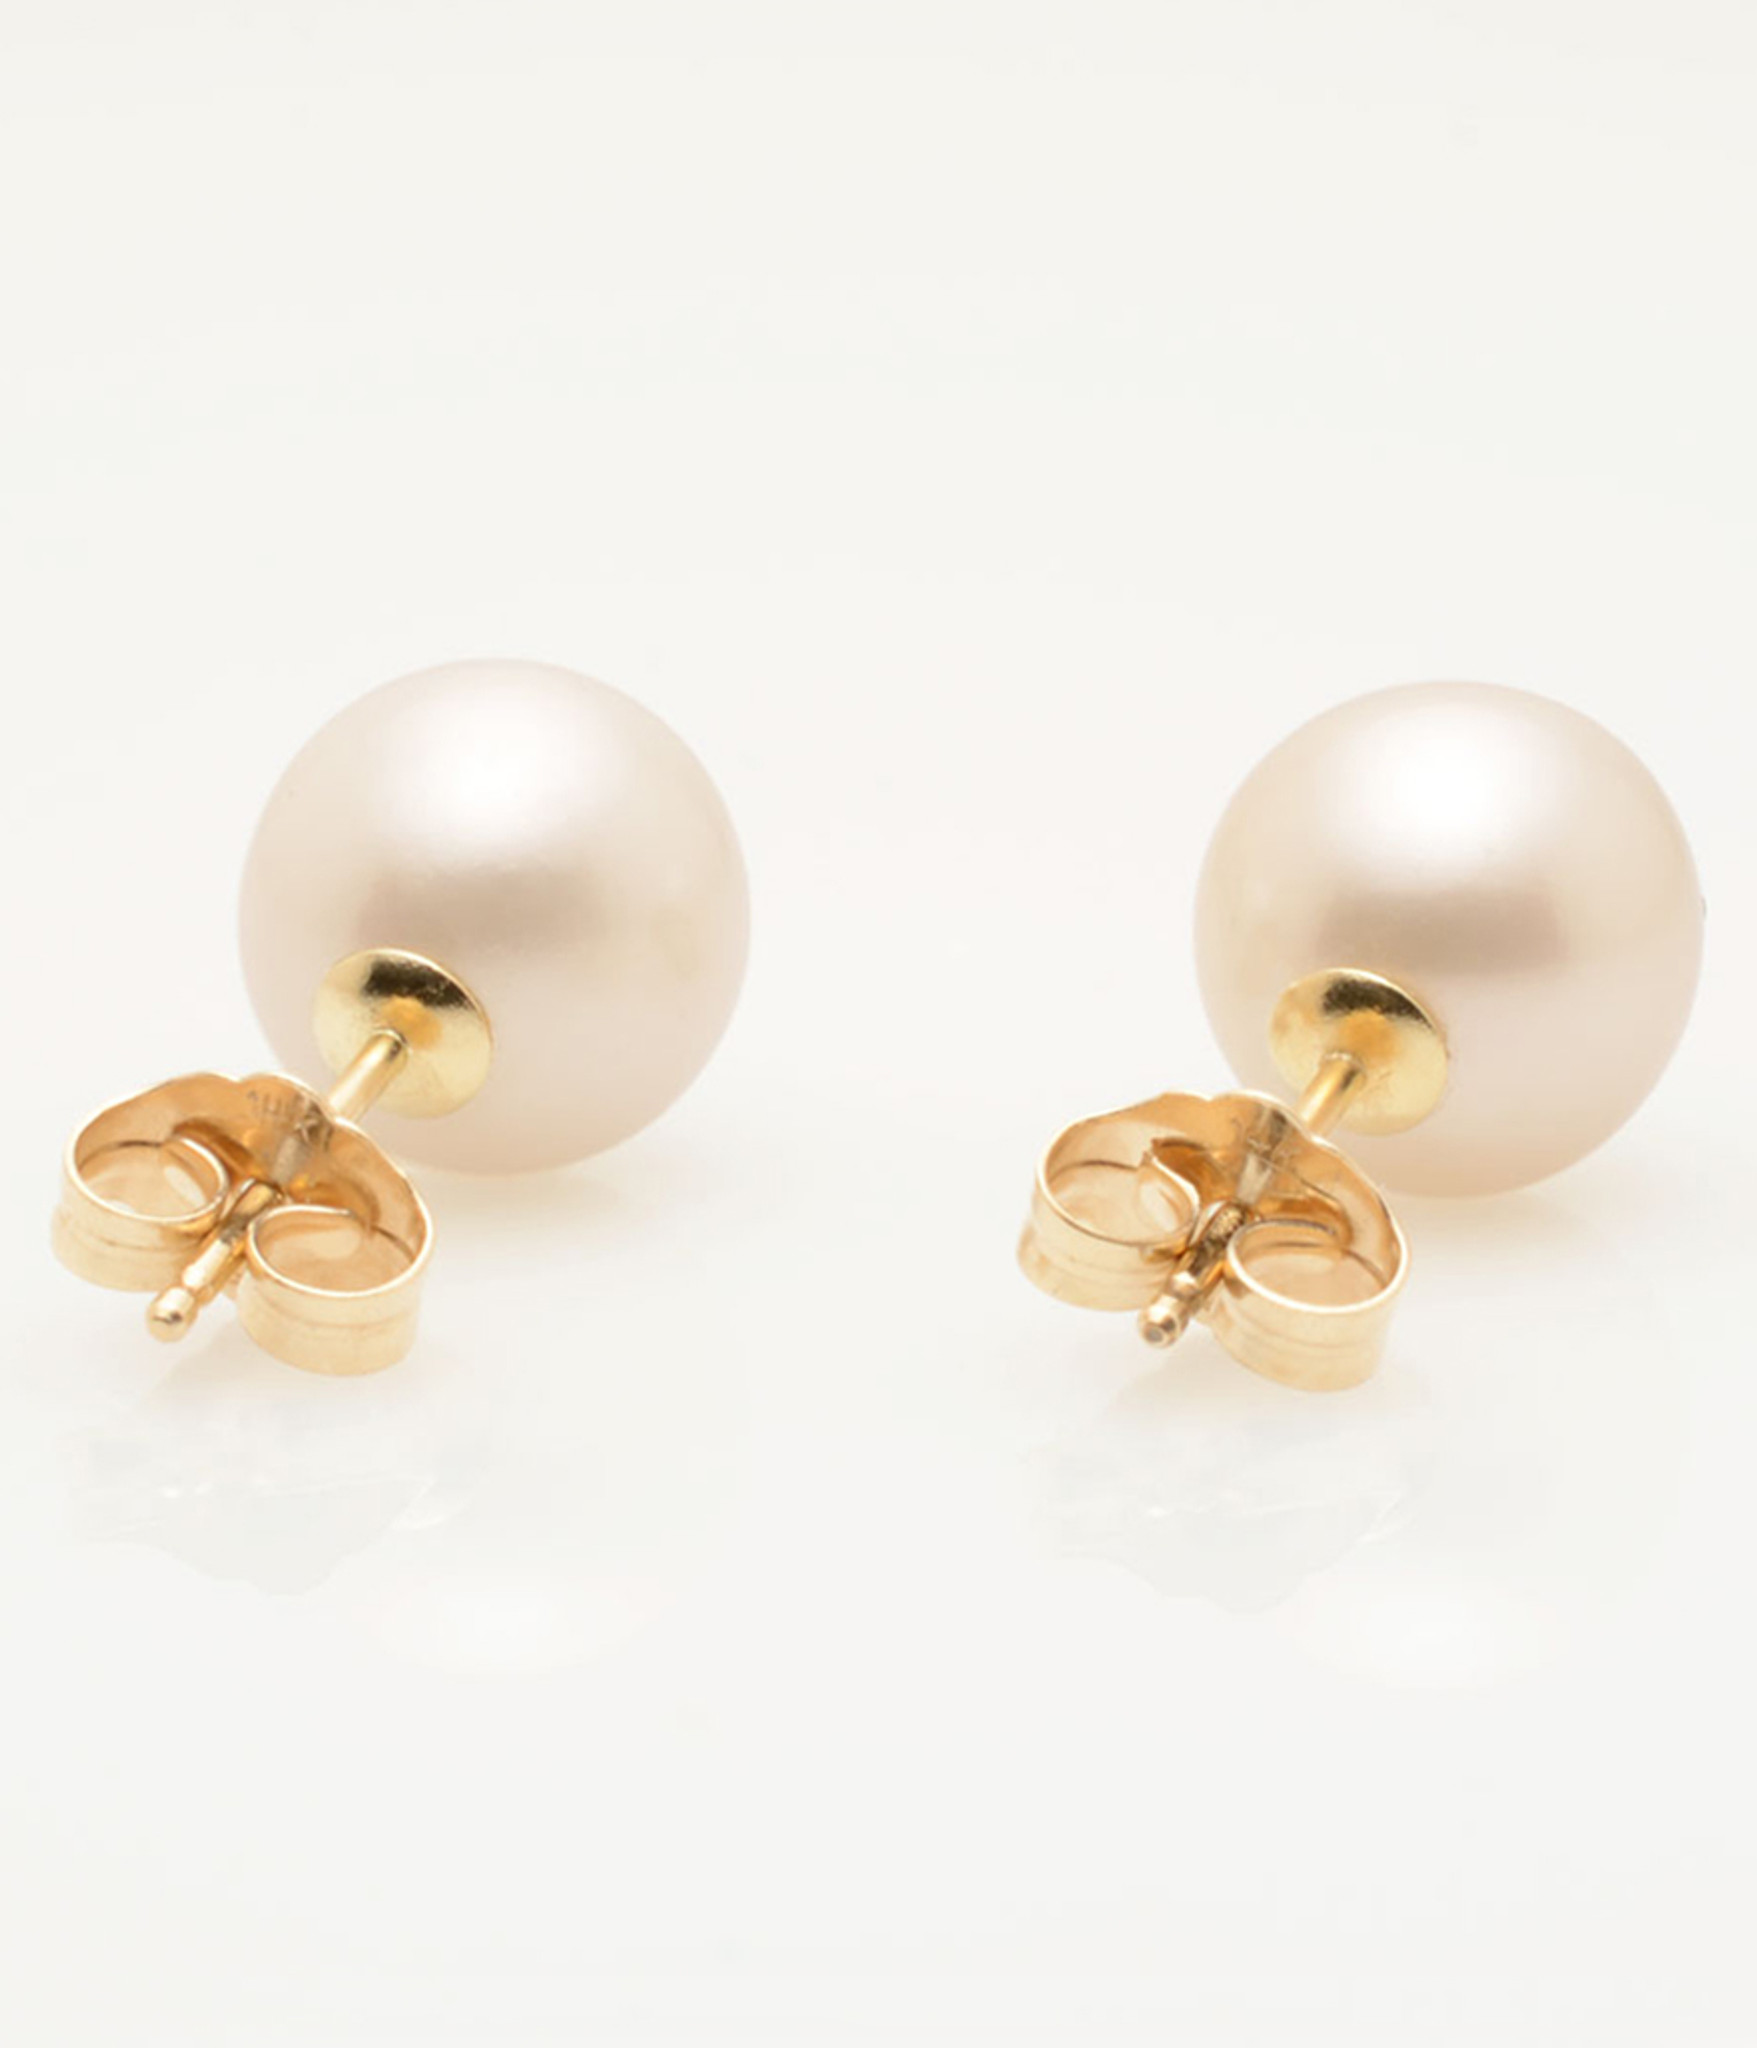 Back view of Cultured Freshwater Pearl Earrings with X Emoji Diamond Pave and 14k Gold Posts by Jewelry Designer Nektar De Stagni (8-9-mm)